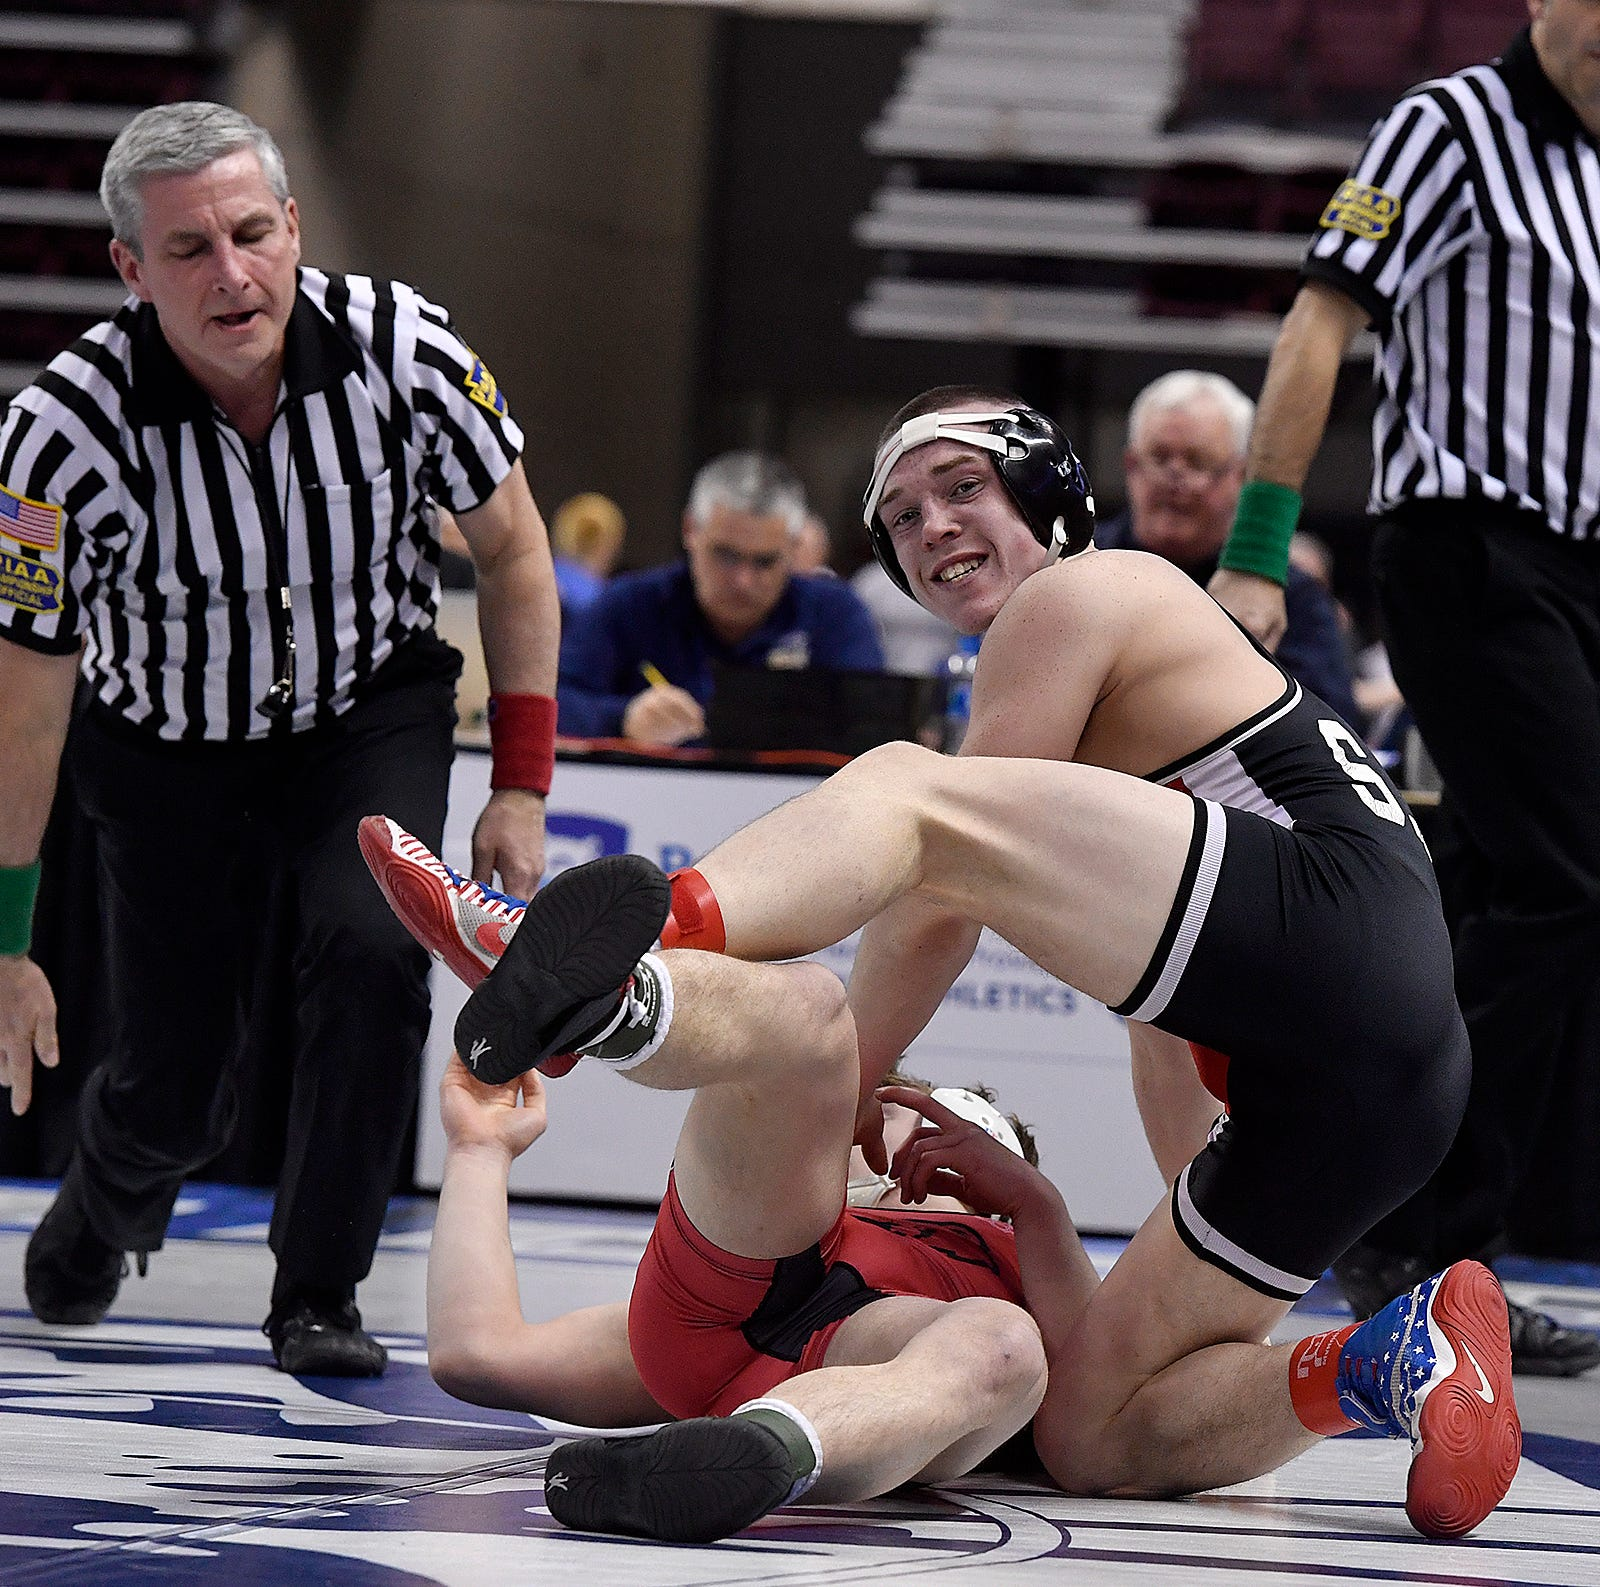 Susquehannock's Romjue highlights first day for Y-A League wrestlers at state championships